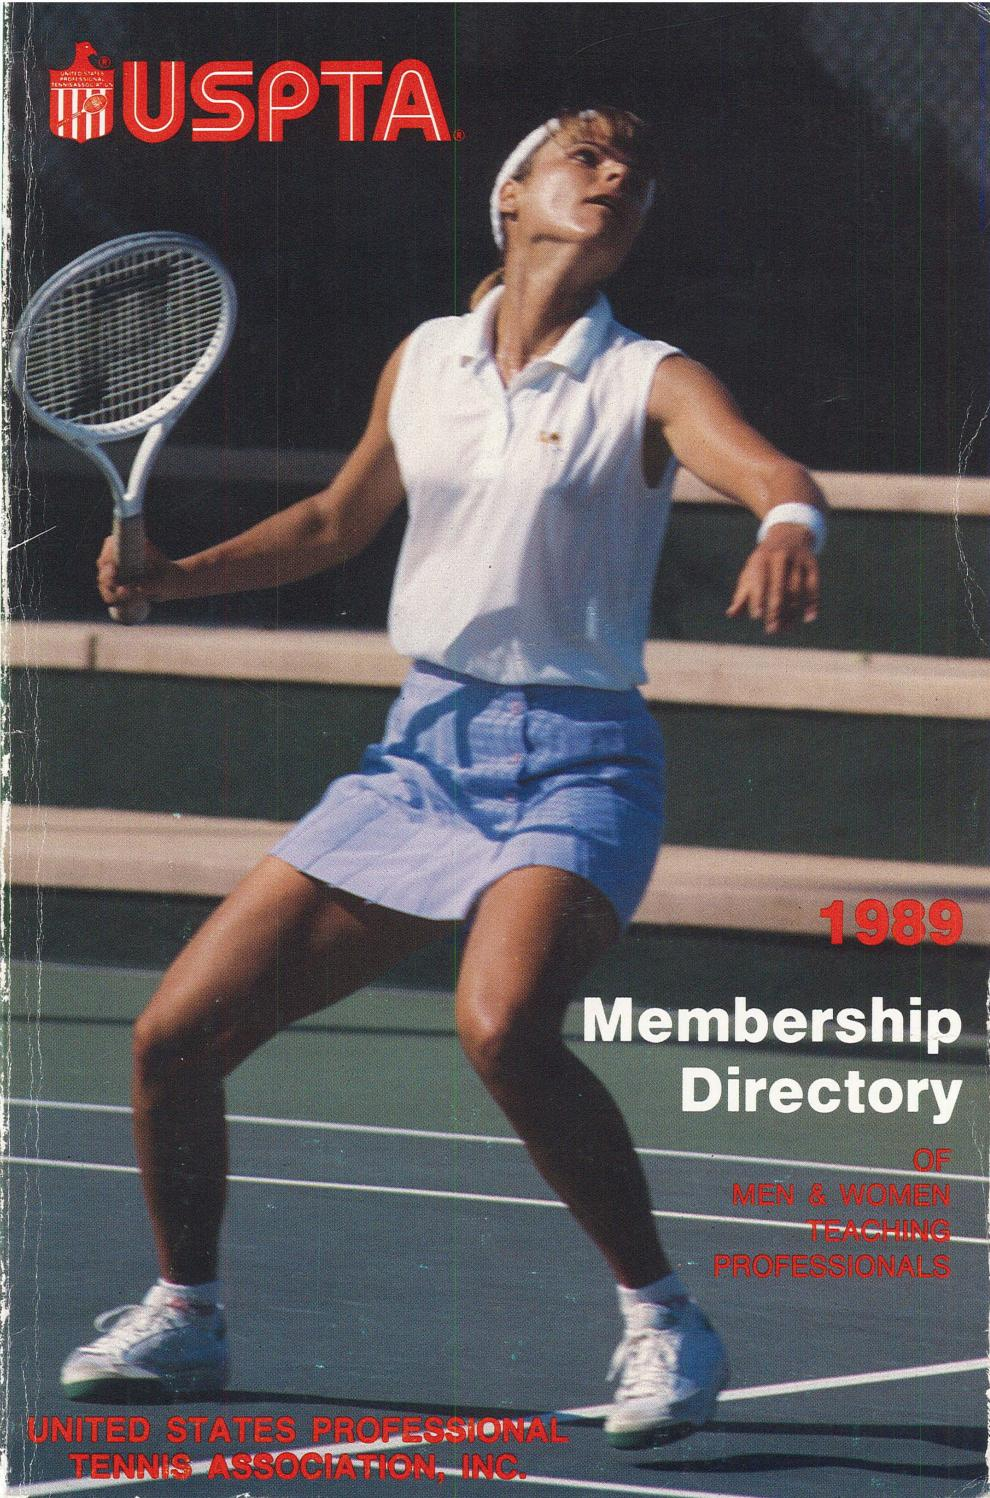 d17300ccae58b3 USPTA Membership Directory 1989 by USPTA - issuu